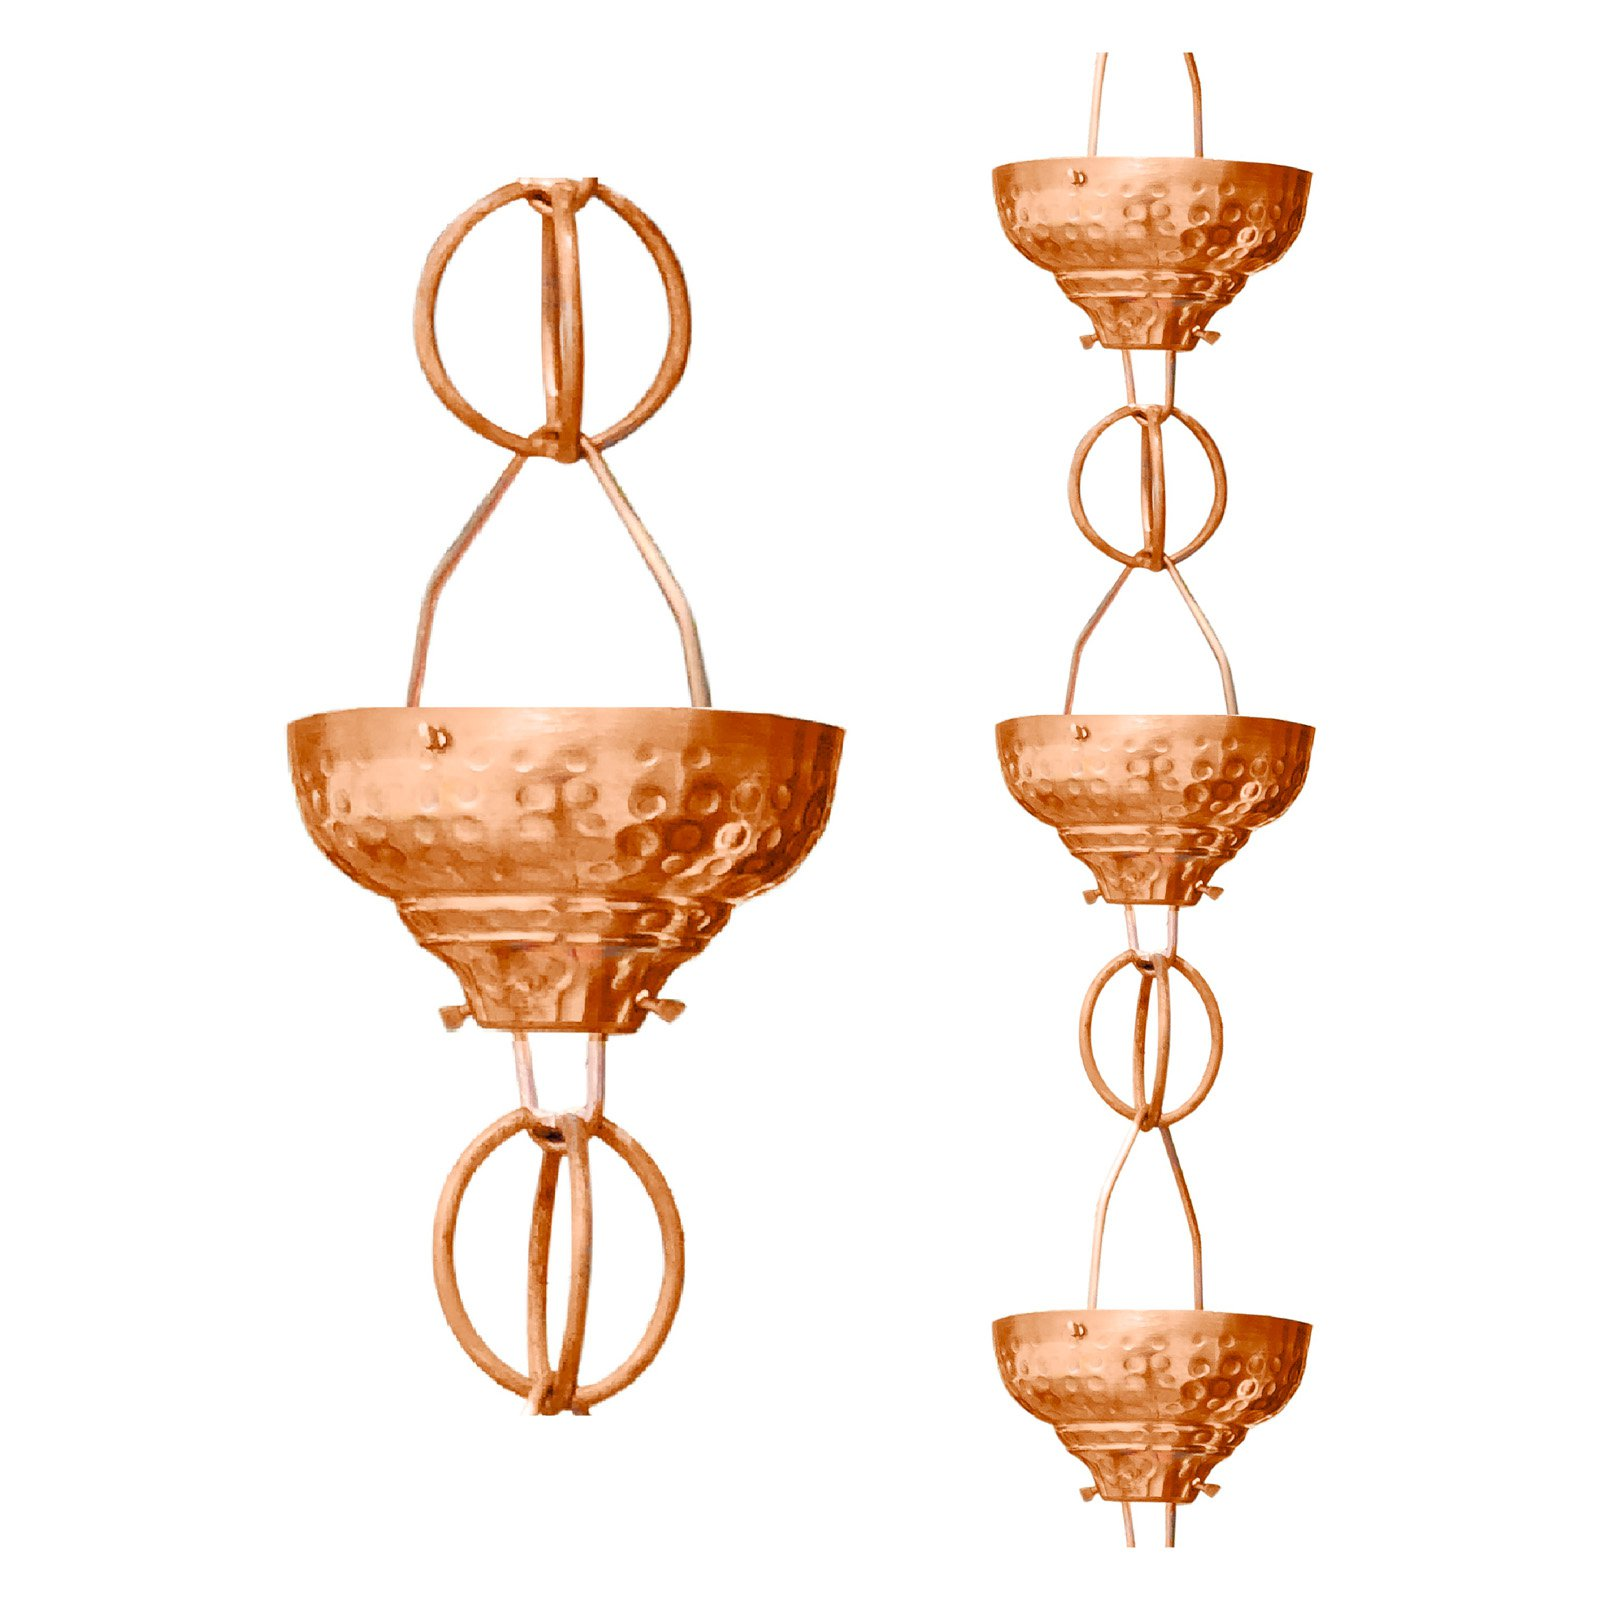 Monarch Hammered Eastern Cup 8.5-Foot Pure Copper Rain Chain